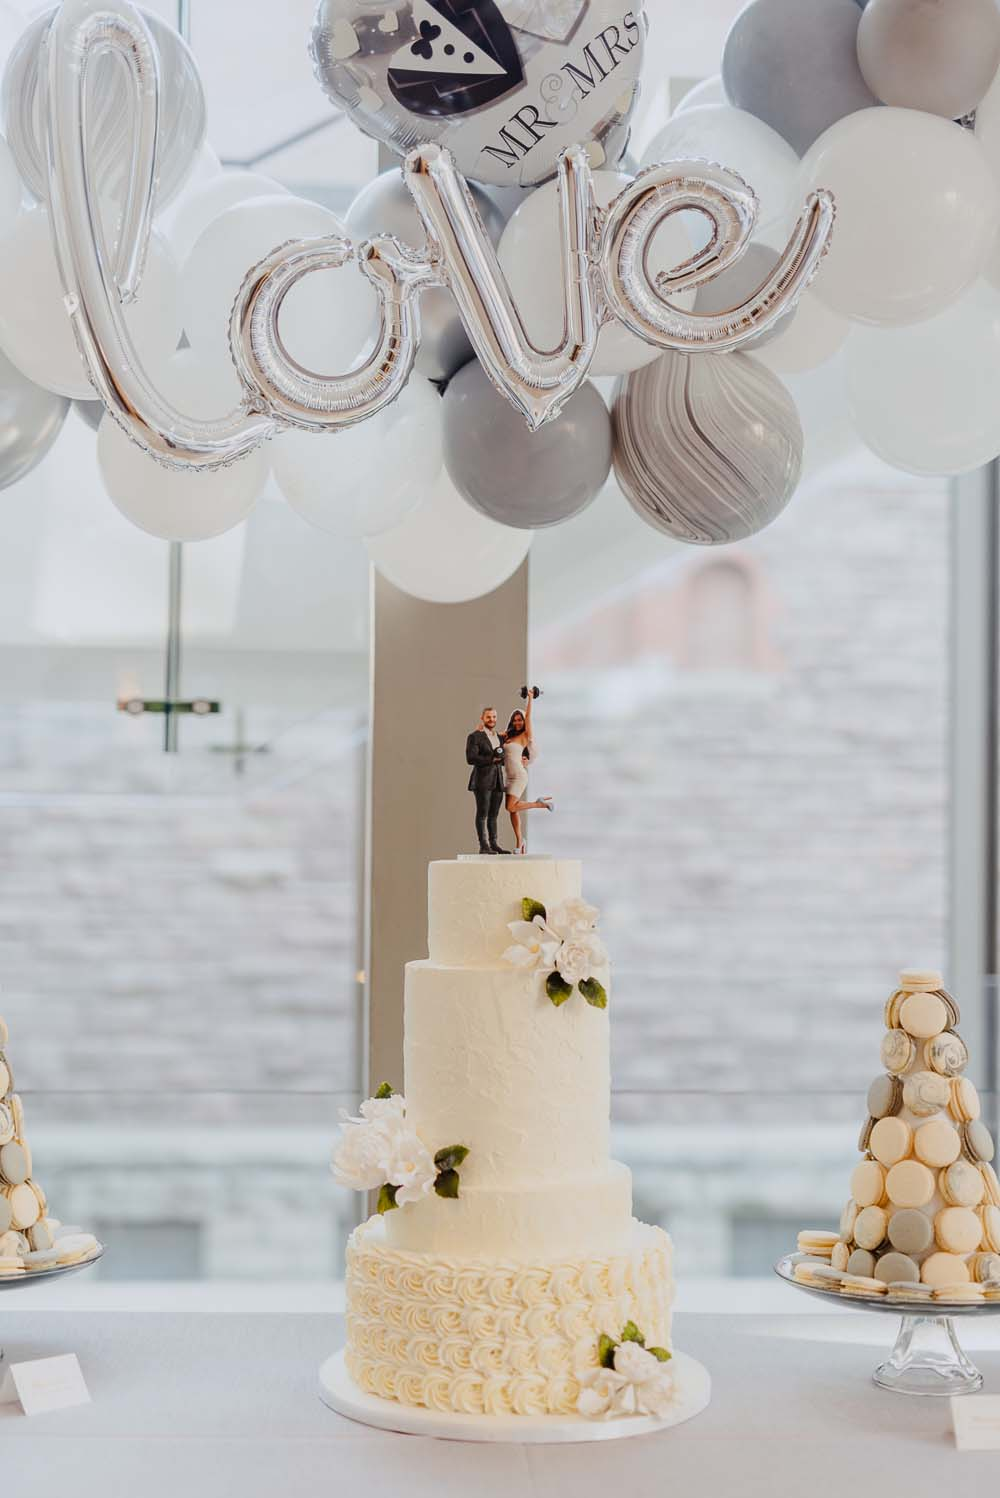 An Opulent Wedding At The Royal Conservatory Of Music - cake